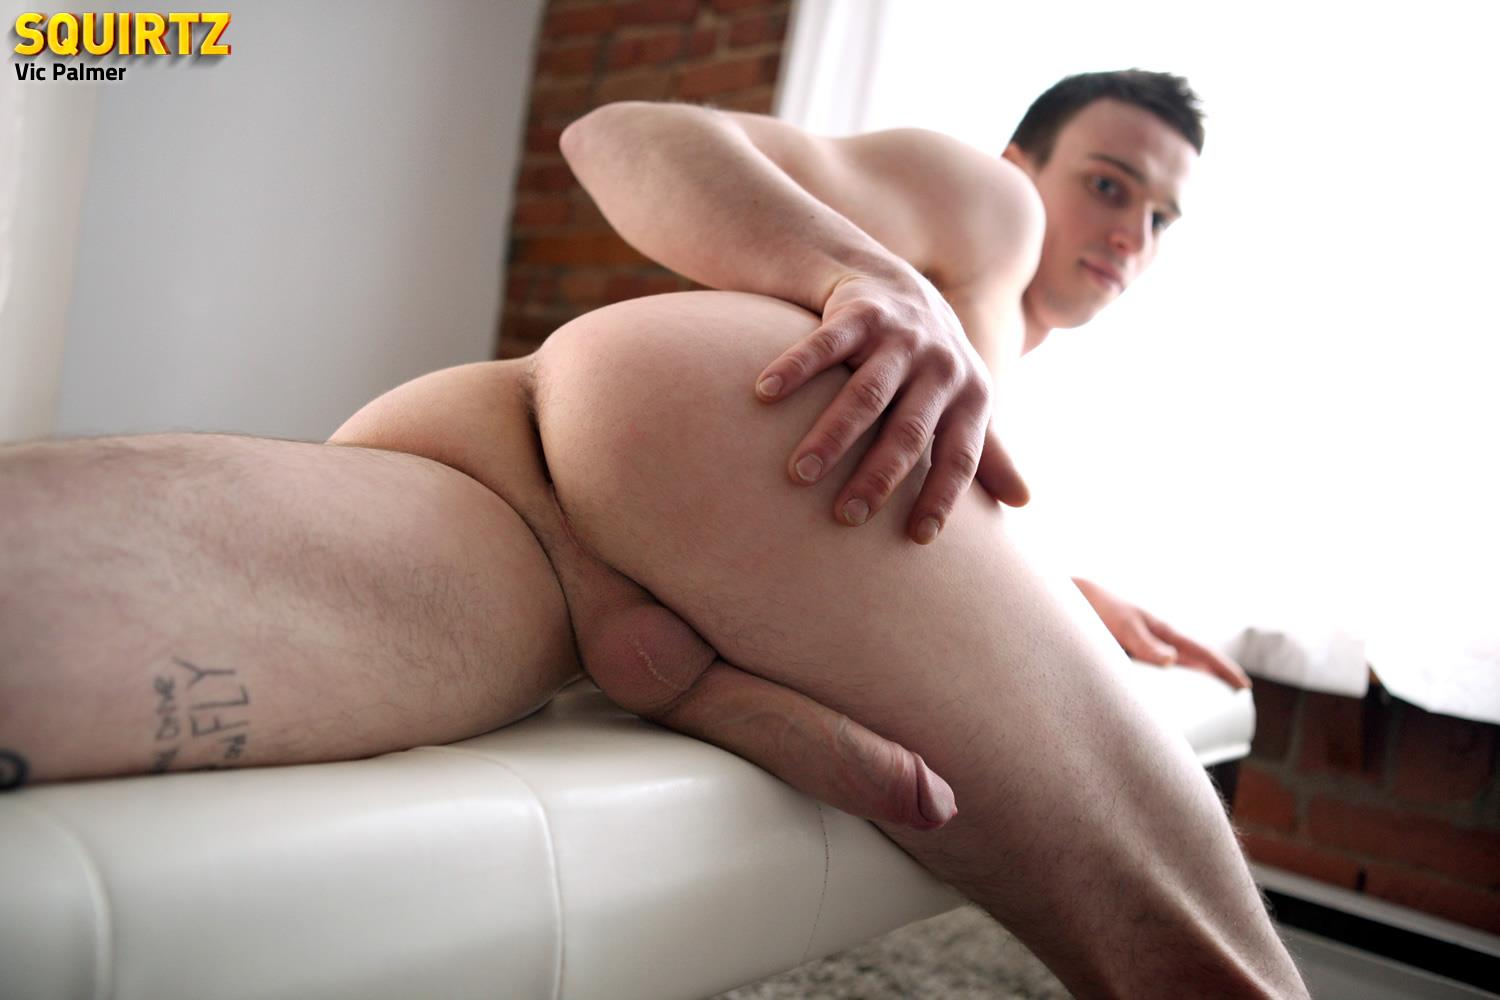 Squirtz-Vic-Palmer-Straight-Muscle-Twink-Jerking-His-Big-Uncut-Cock-Amateur-Gay-Porn-21 Amateur Straight Muscle Twink Jerking His Big Uncut Cock